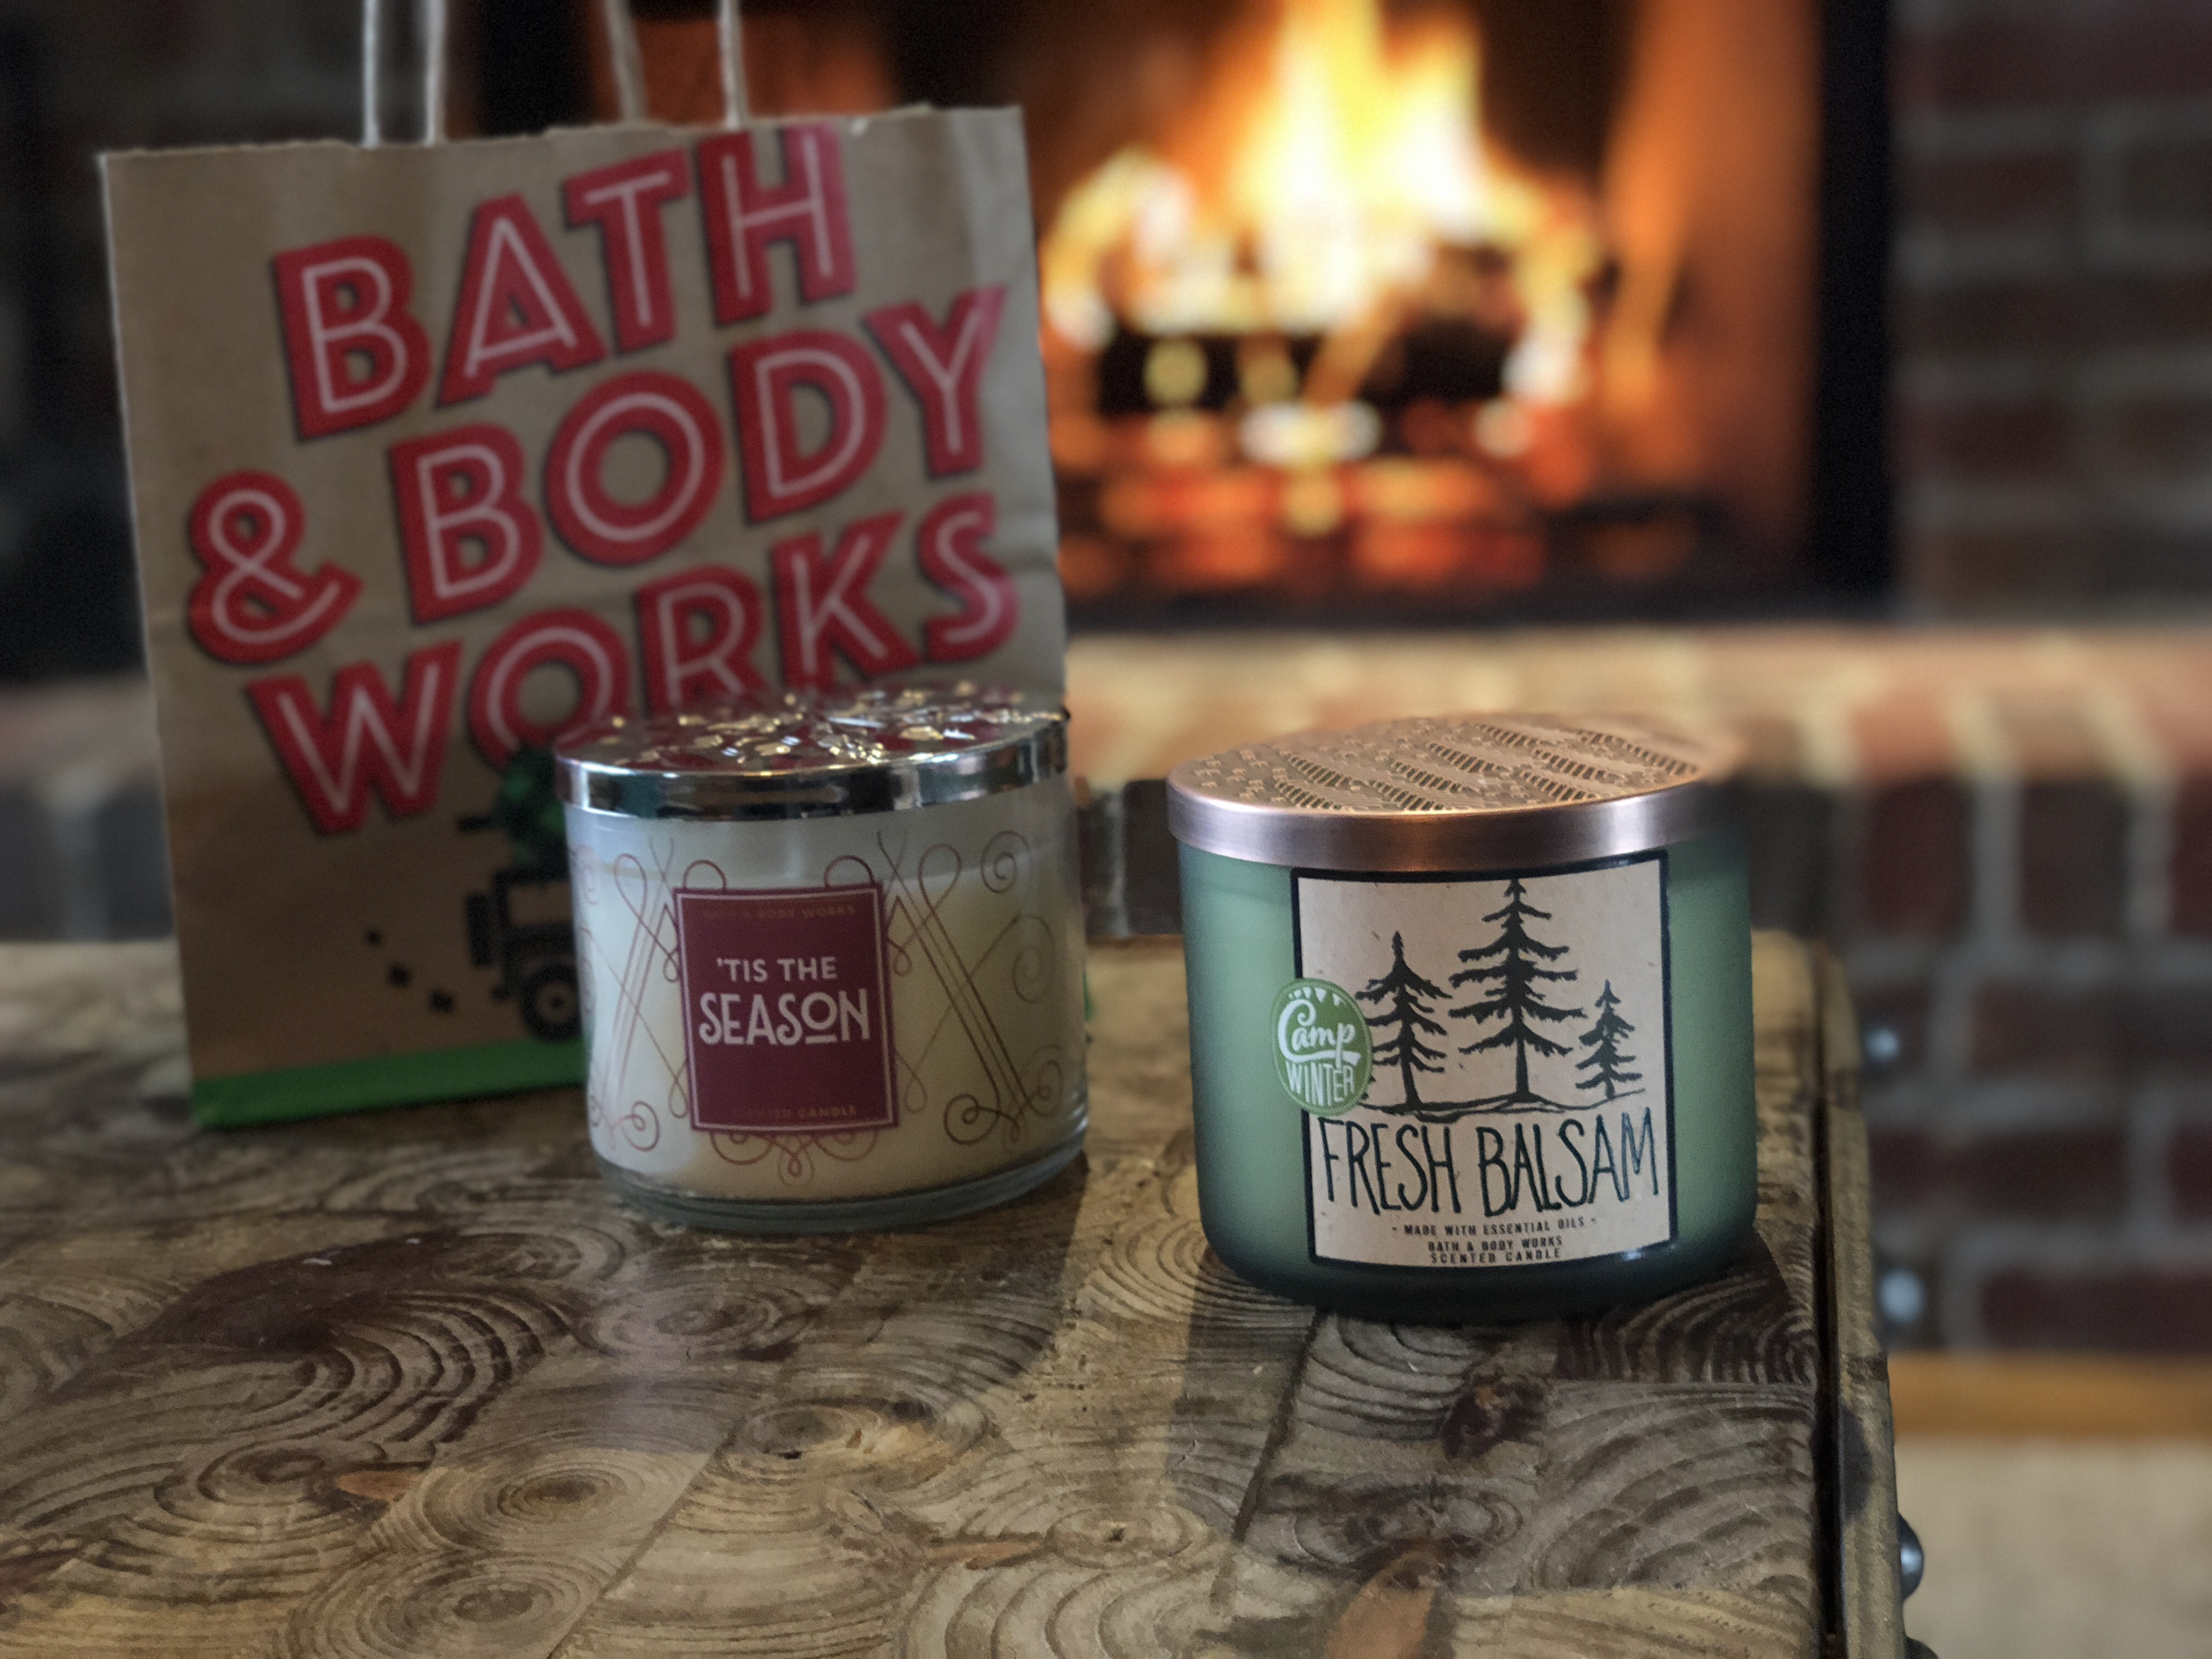 16 secrets for saving big at bath & body works – candles on a table near a fireplace